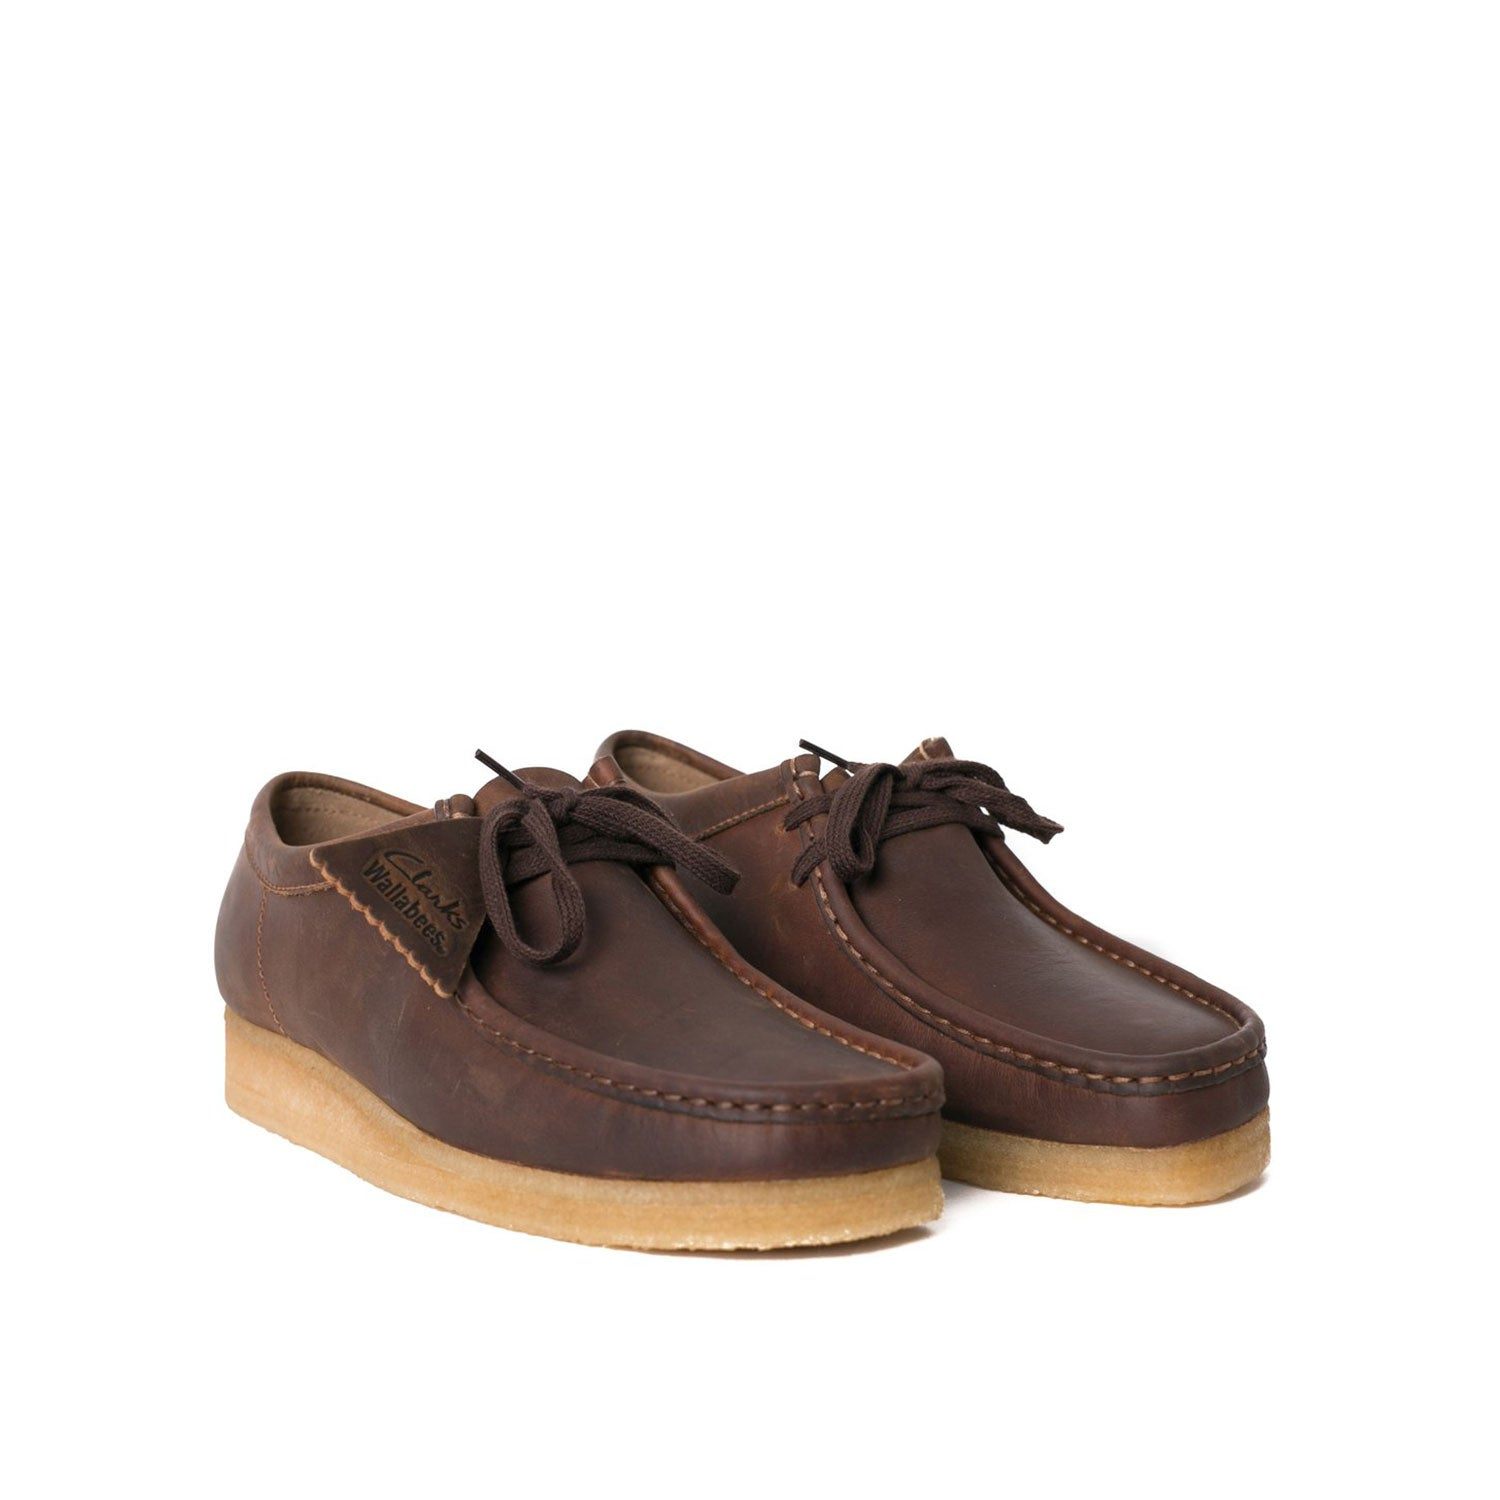 exclusive range sale usa online great prices Wallabee Oxford Beeswax